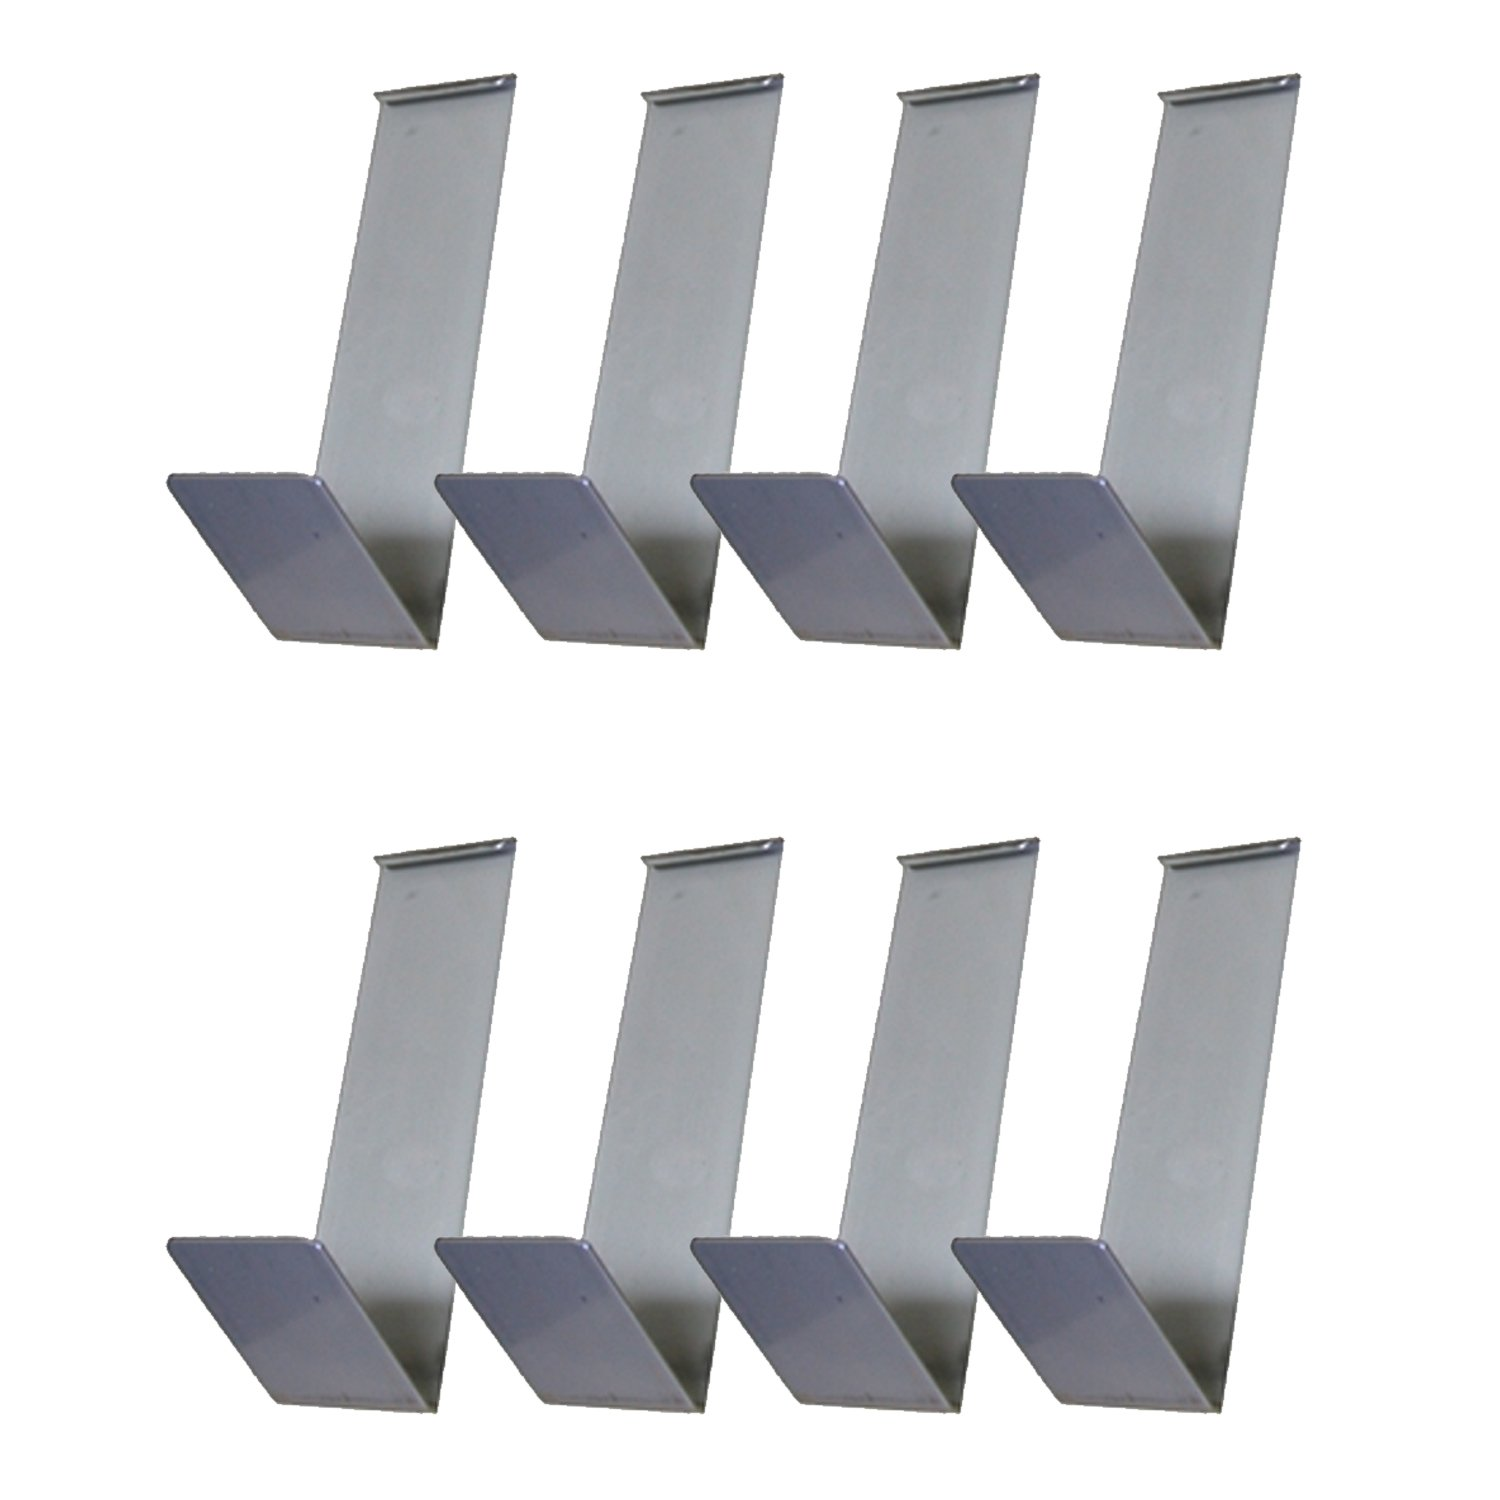 Vinyl Siding Clips, for Hanging Clothes, Shoes, Sandals (8-Pack)